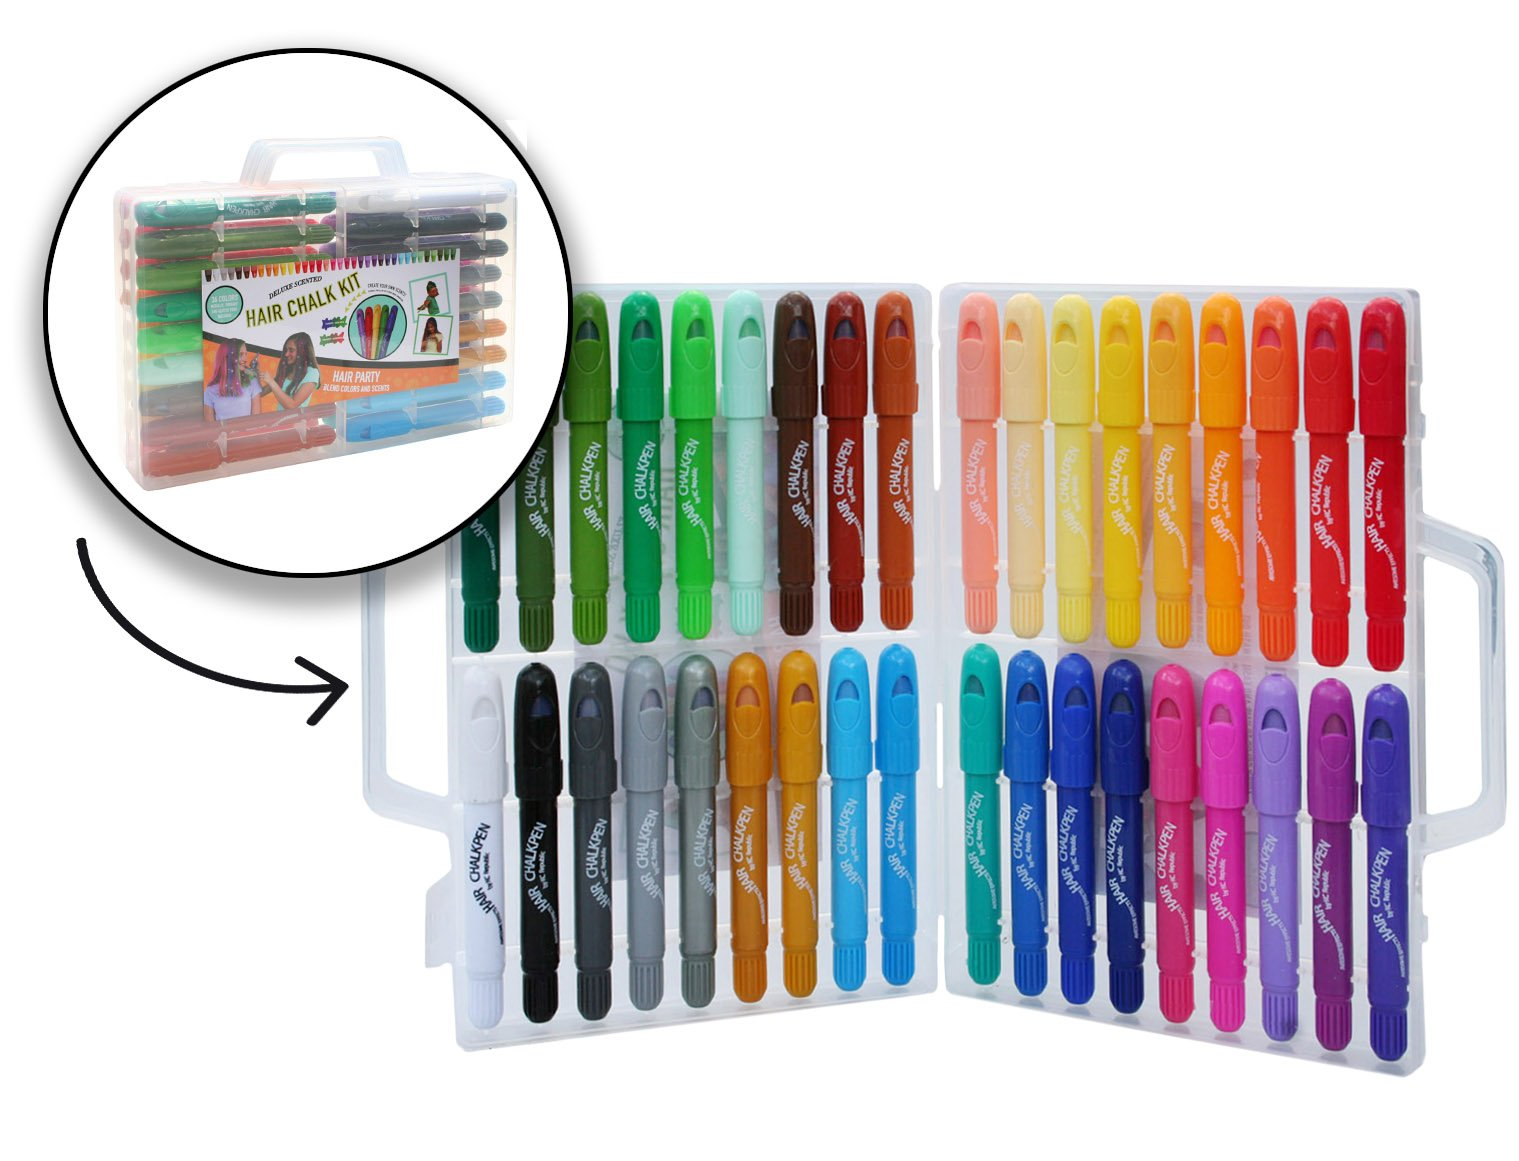 32 Color Hair Chalk Pen Set Boldest and Brightest Metallic and Rainbow by KC Republic